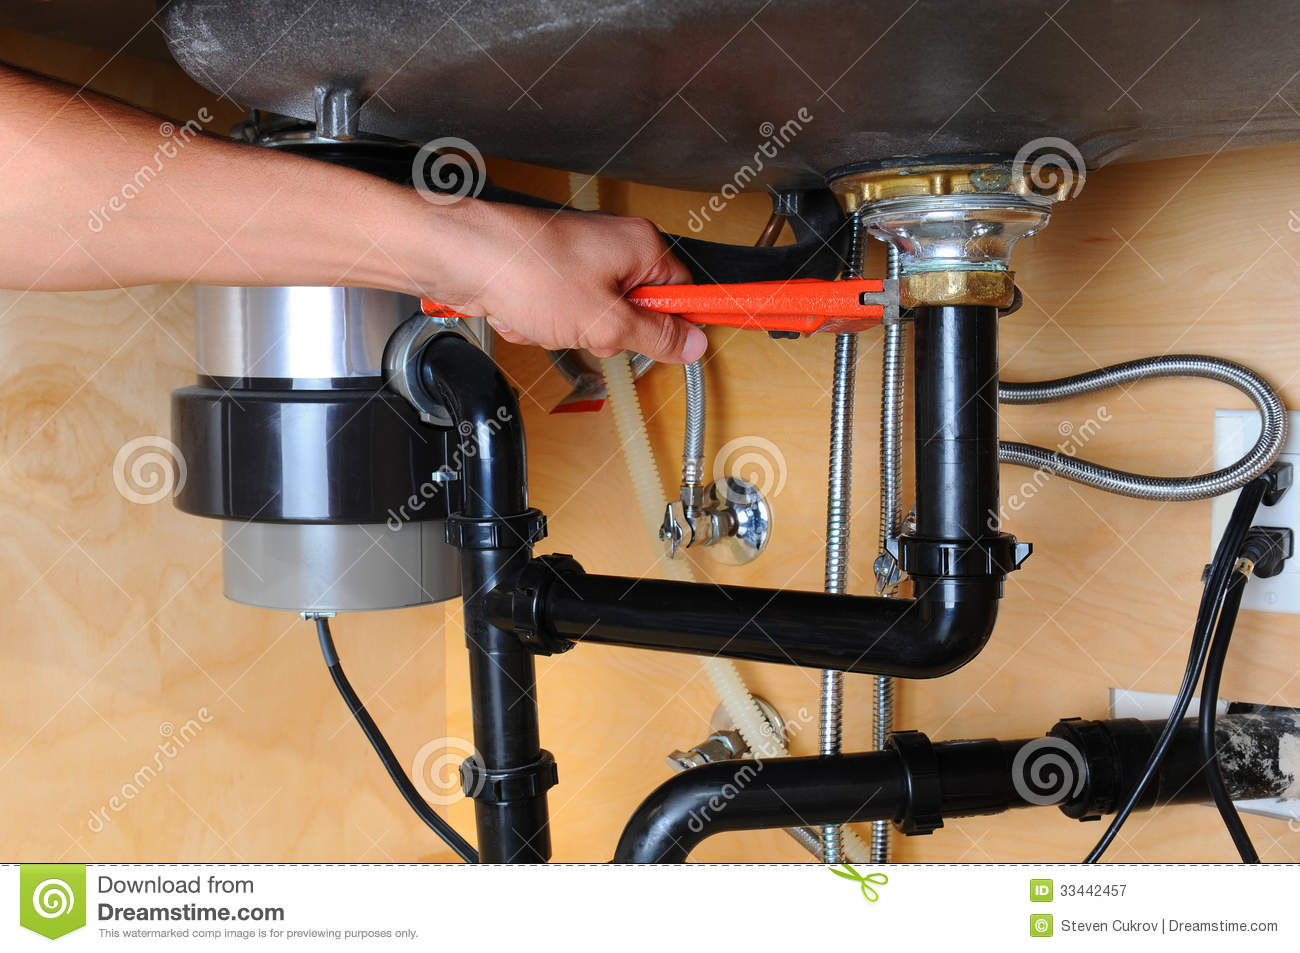 Plumber Using Wrench Under Kitchen Sink Royalty Free Stock Photography Image 33442457